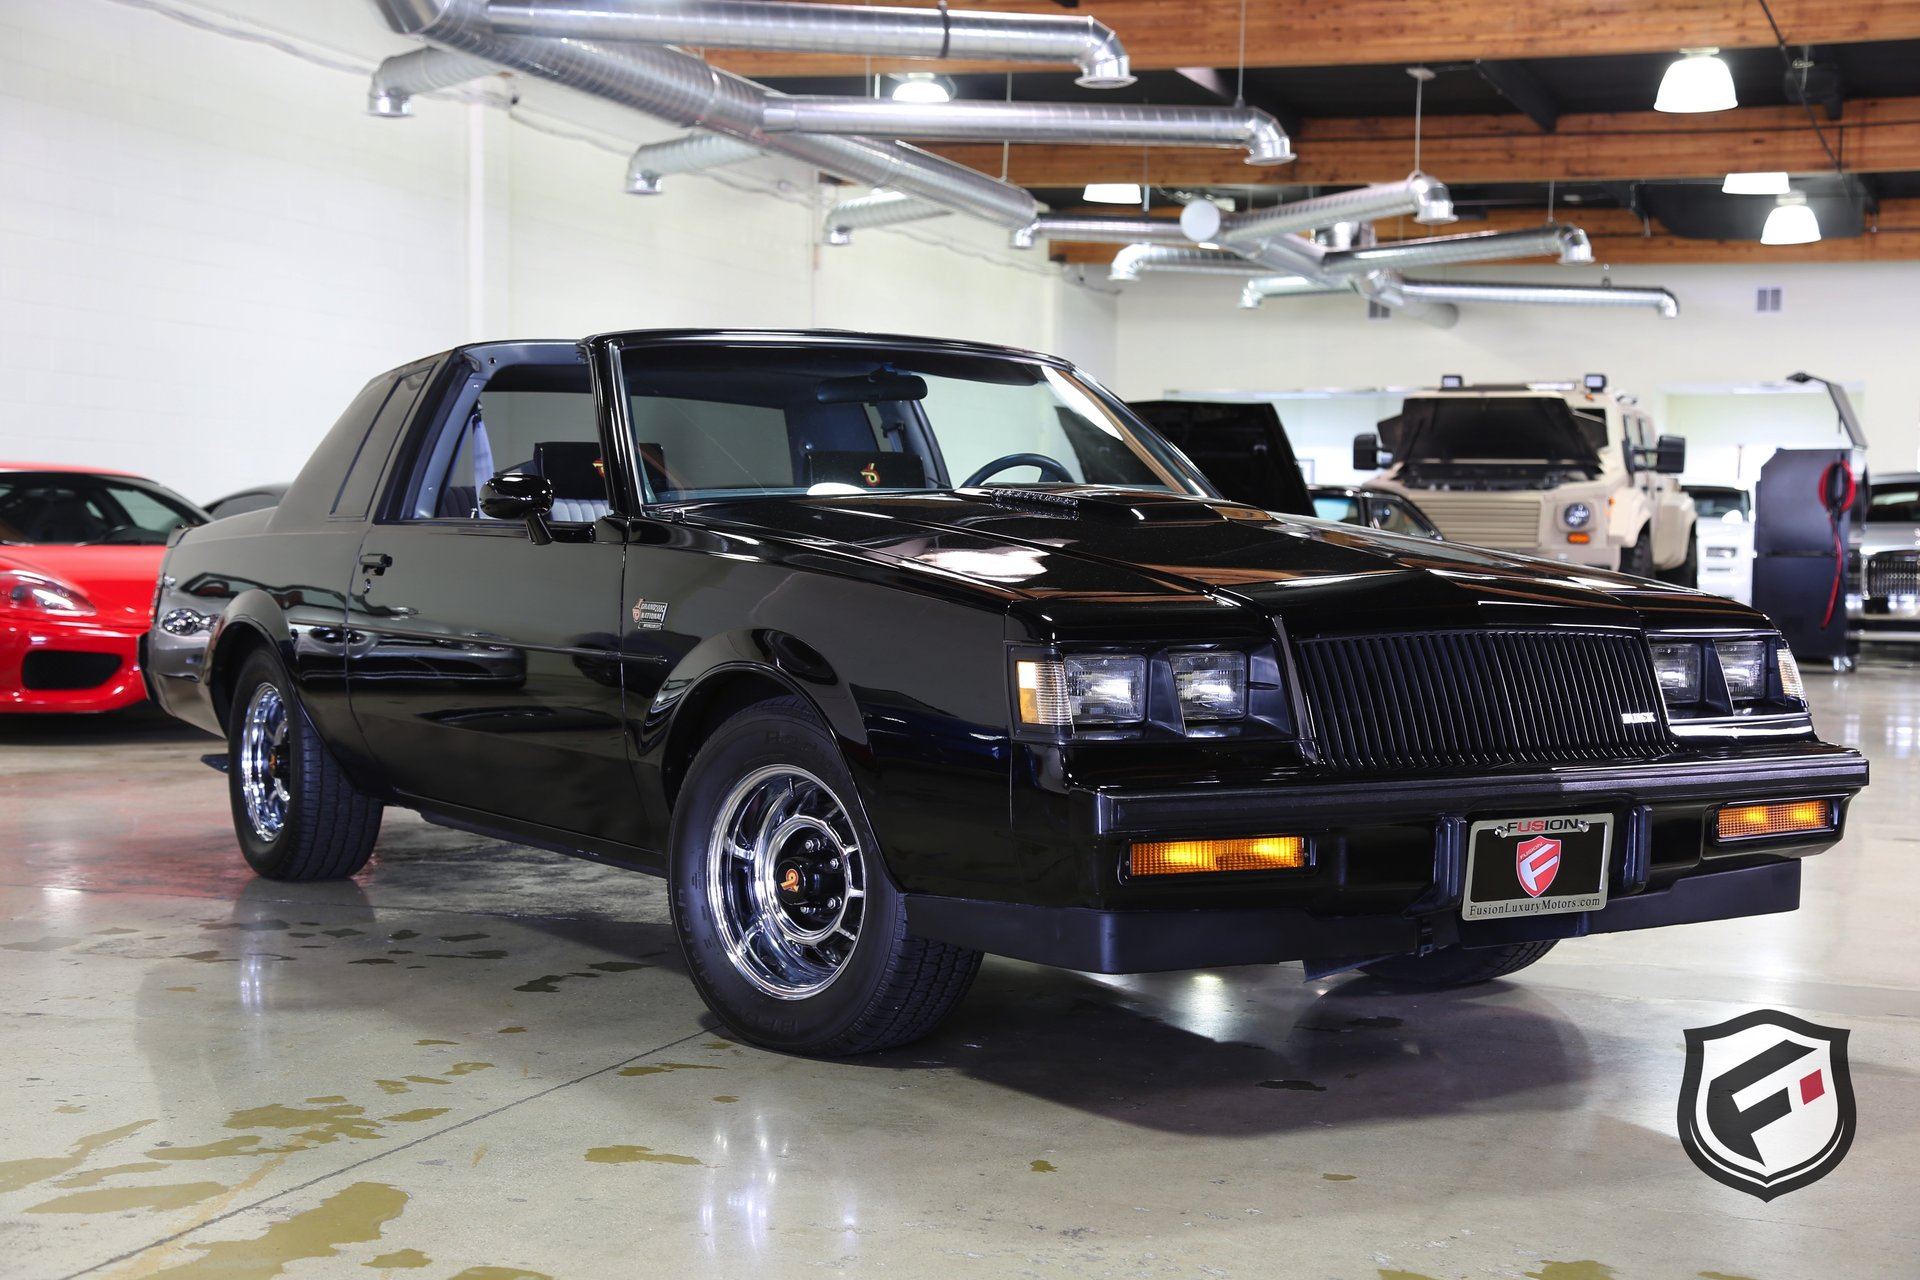 Buick Grand National Gnx For Sale >> 1987 Buick Grand National | Fusion Luxury Motors